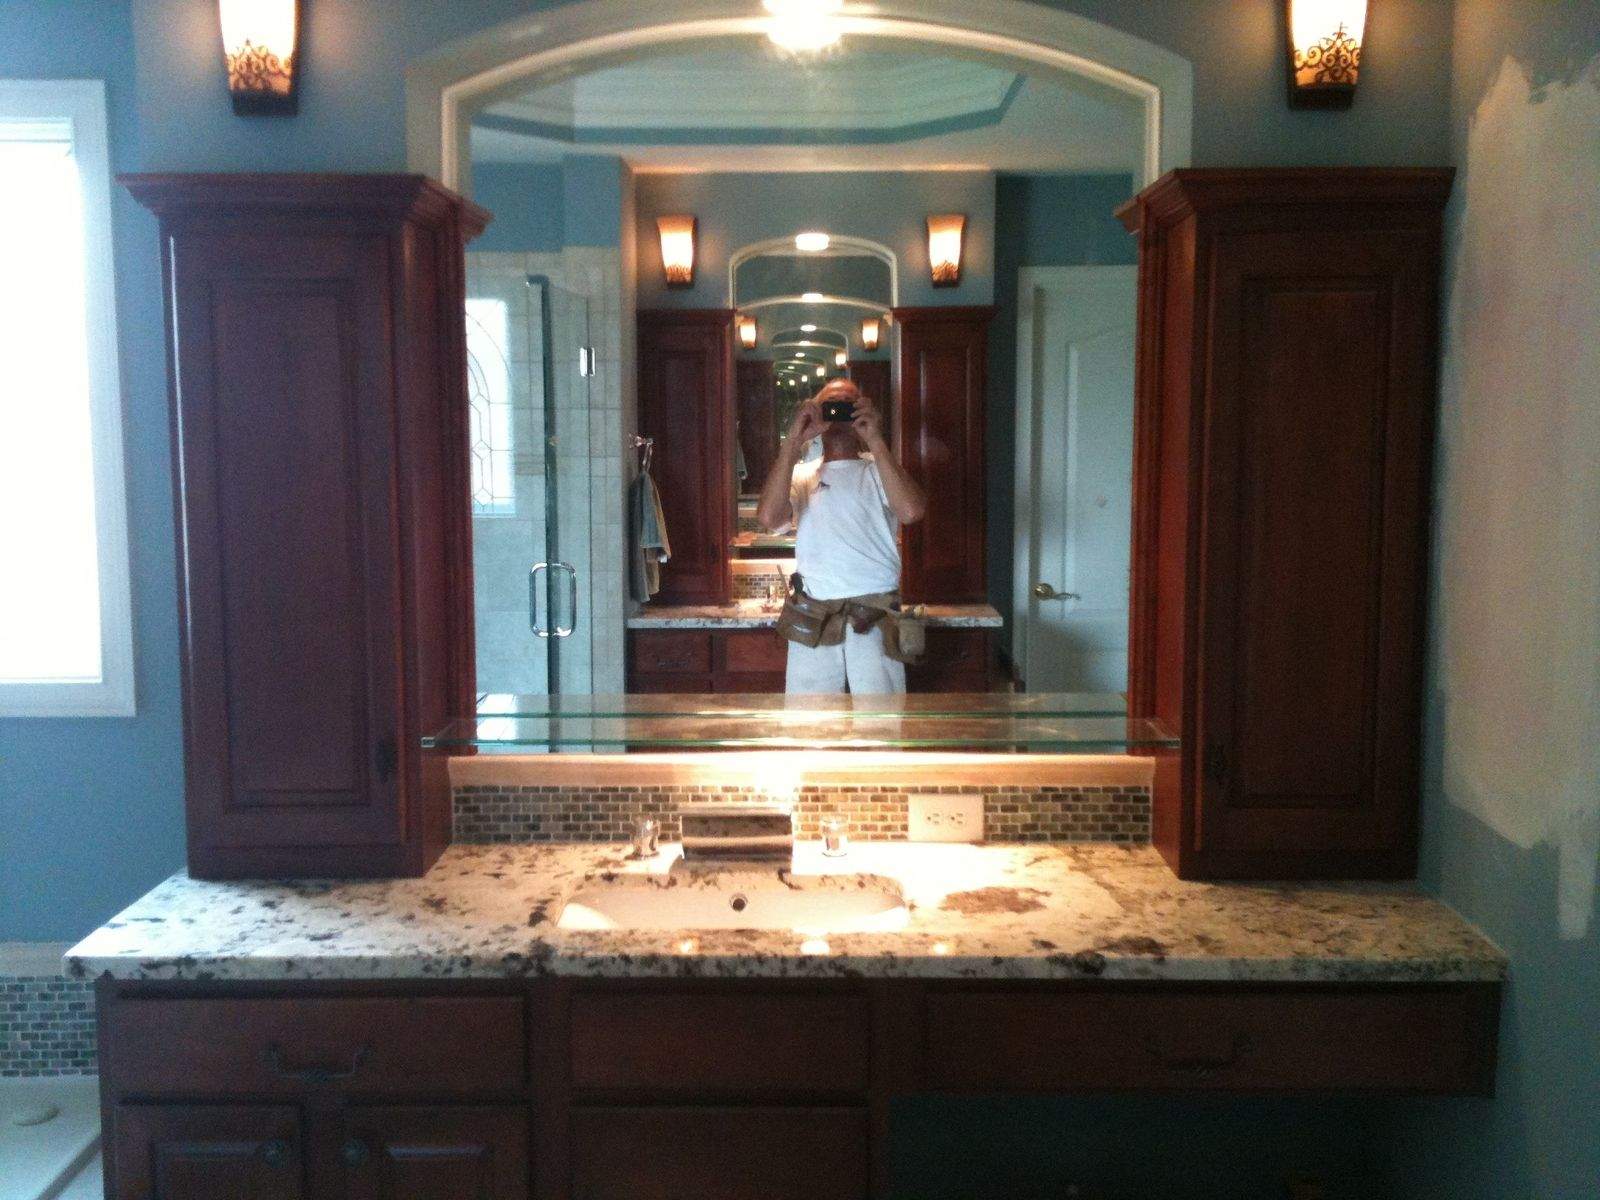 Bathroom, Spectacular Bathroom Vanities With Tops And Floating Drugs Cabinet  Also Fixture Wall Lights Also Mirror Design Ideas: Wonderful B.